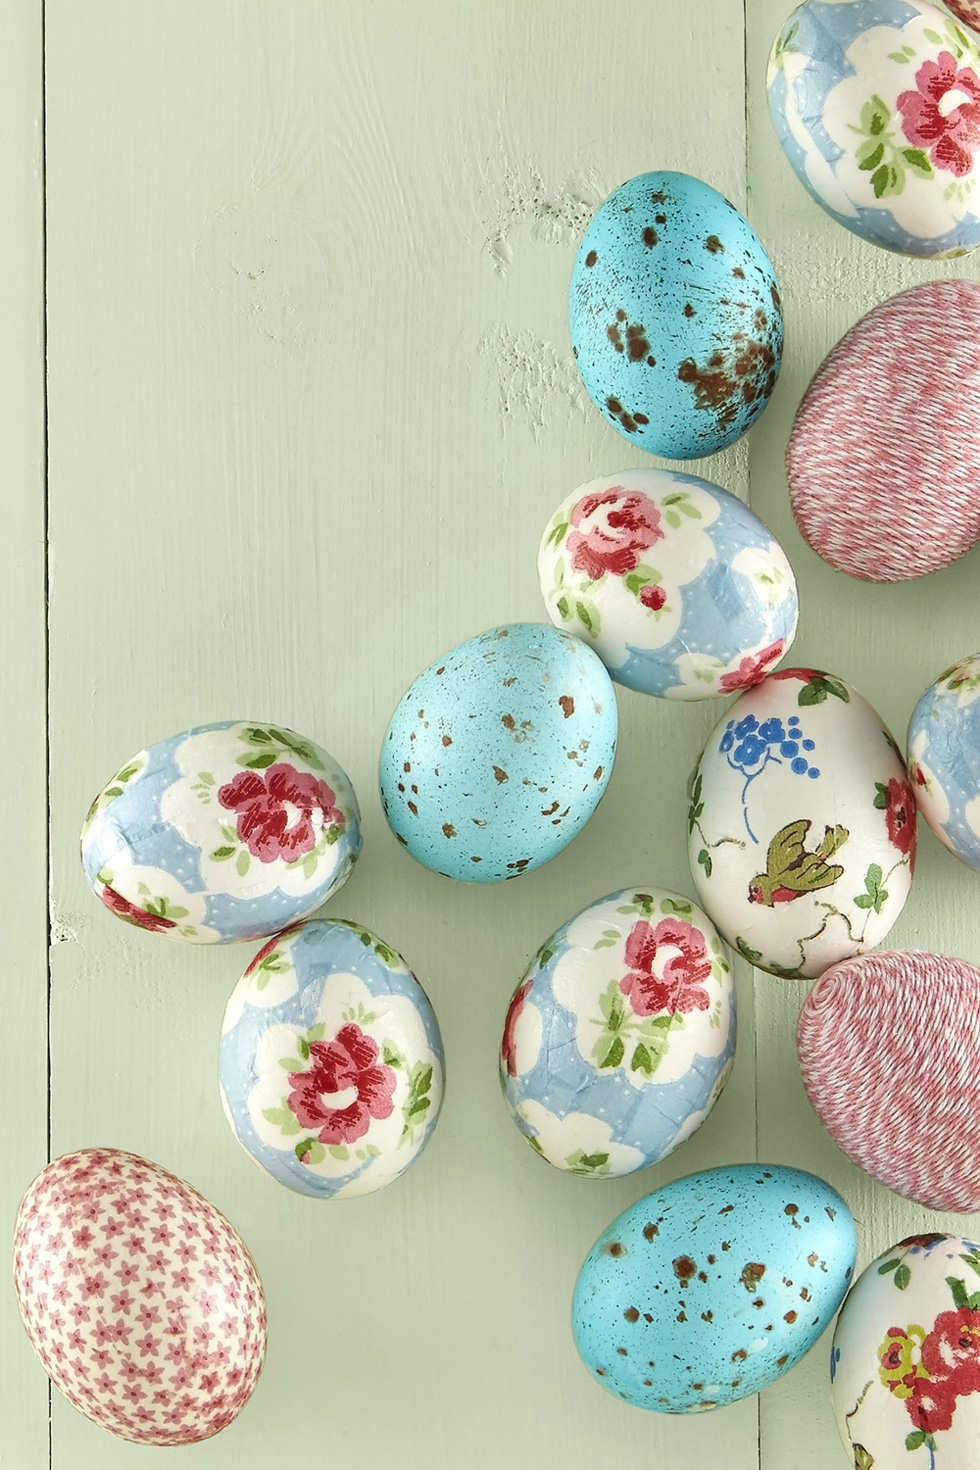 designs creative ideas for decorating easter eggs country living